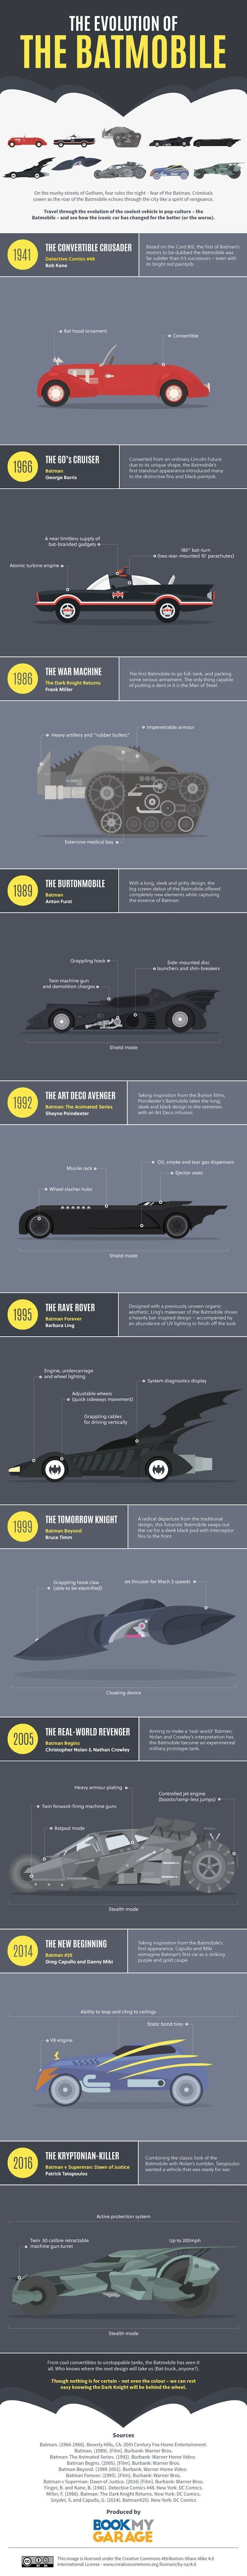 evolution-batmobiles